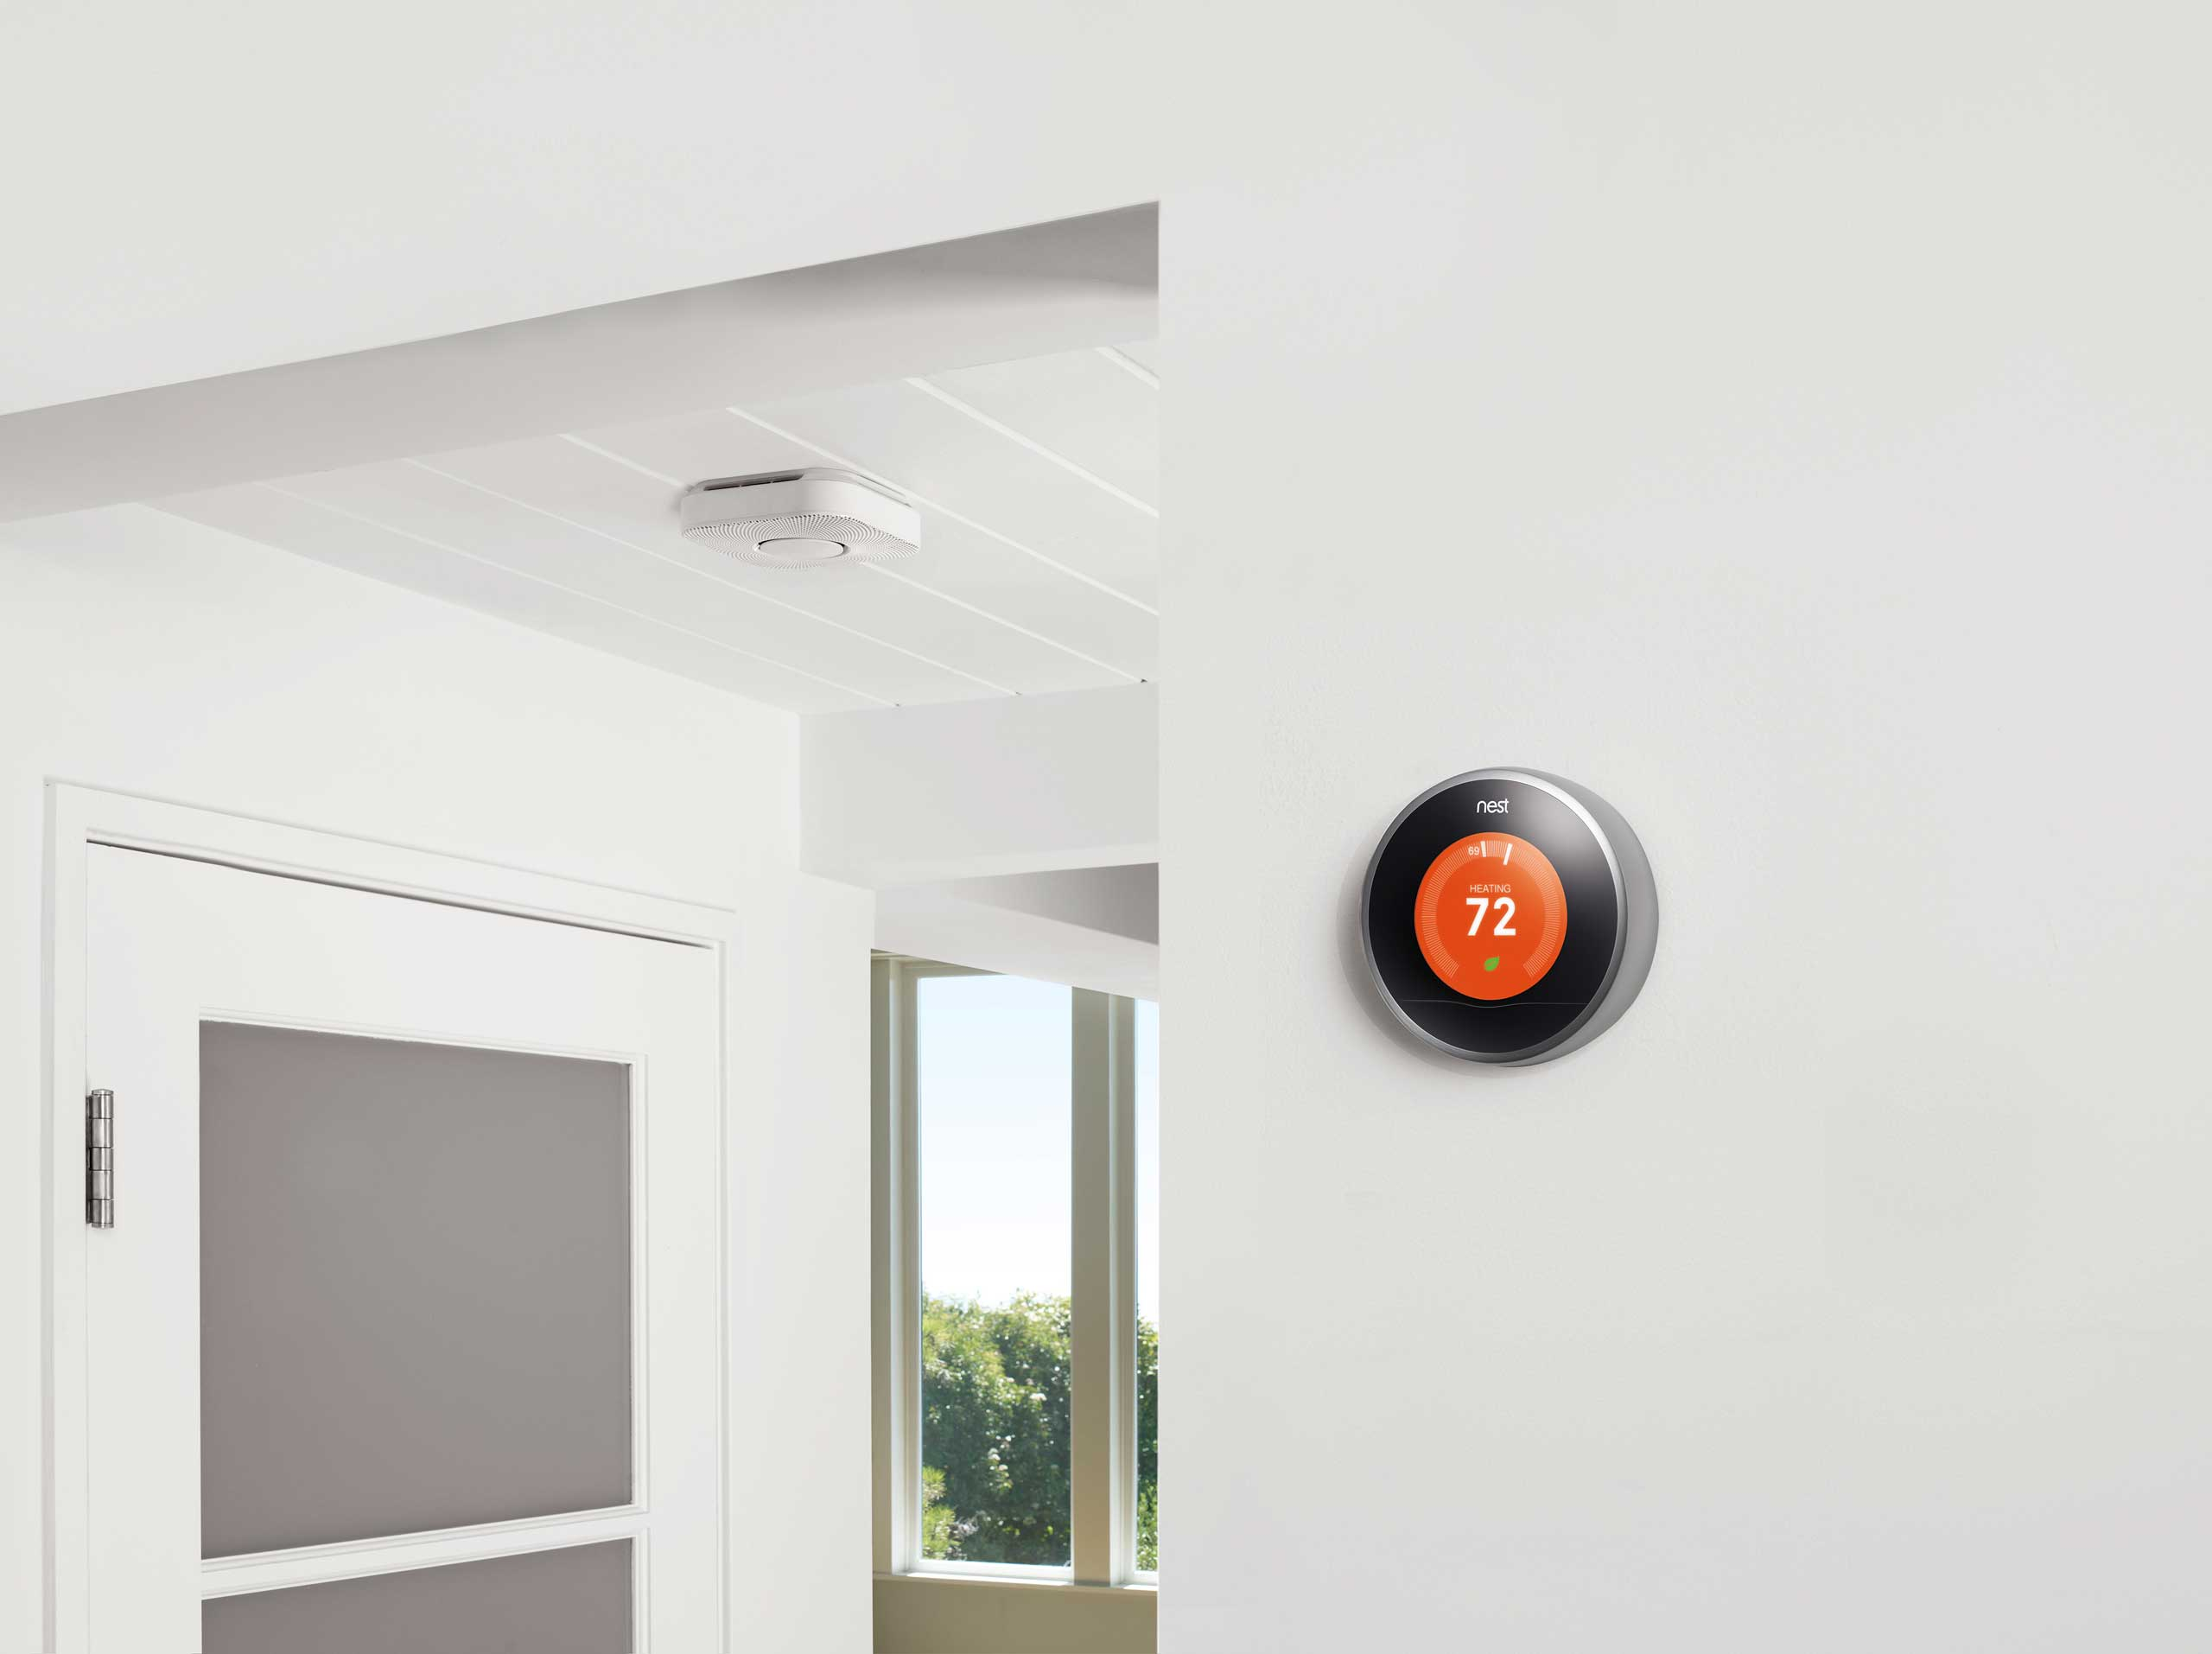 <strong>Nest</strong>                                                                      Acquired by Google in Jan. 2014, Nest Labs wants to turn your home into a smart device. The home automation system includes Internet-connected smoke detectors and thermostats, which have screens and chic, round designs — a huge design boost for devices that haven't really changed in recent decades.